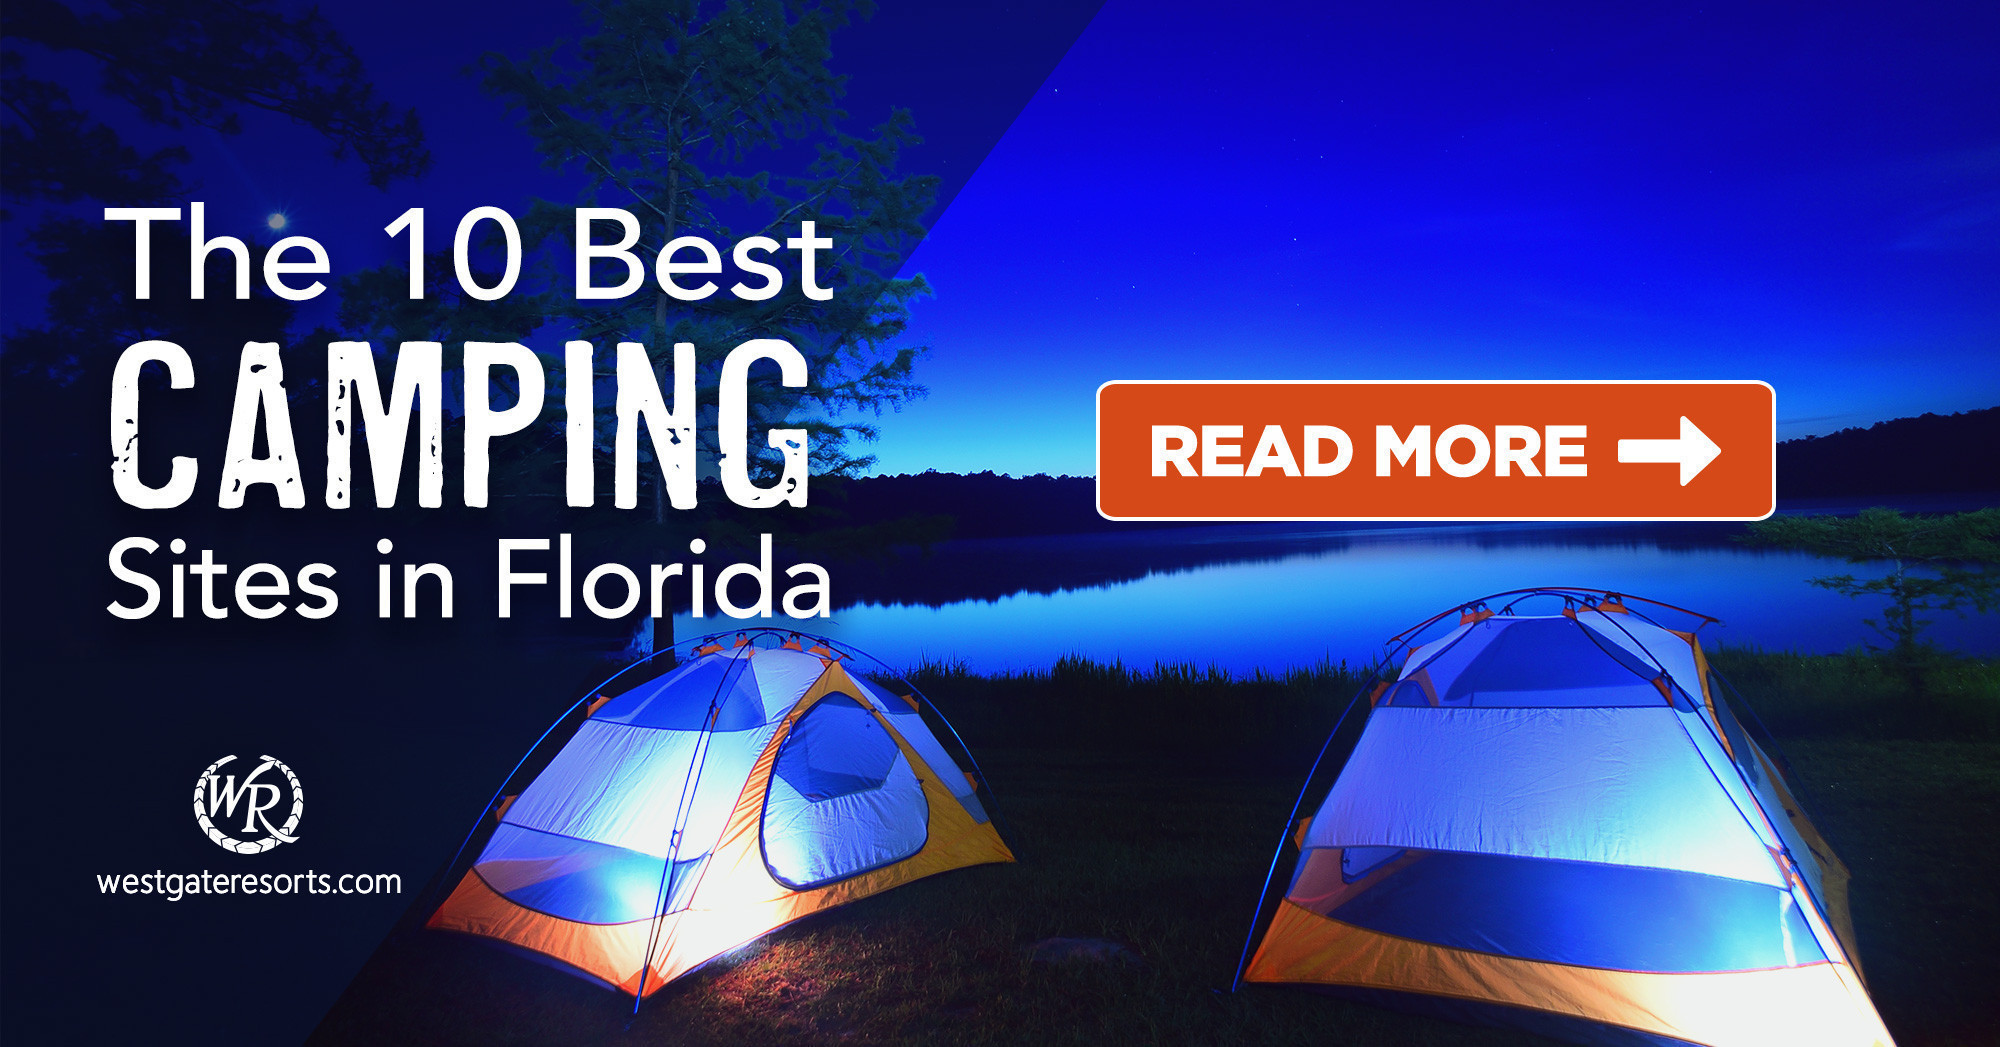 The 10 Best Camping Sites in Florida For Families